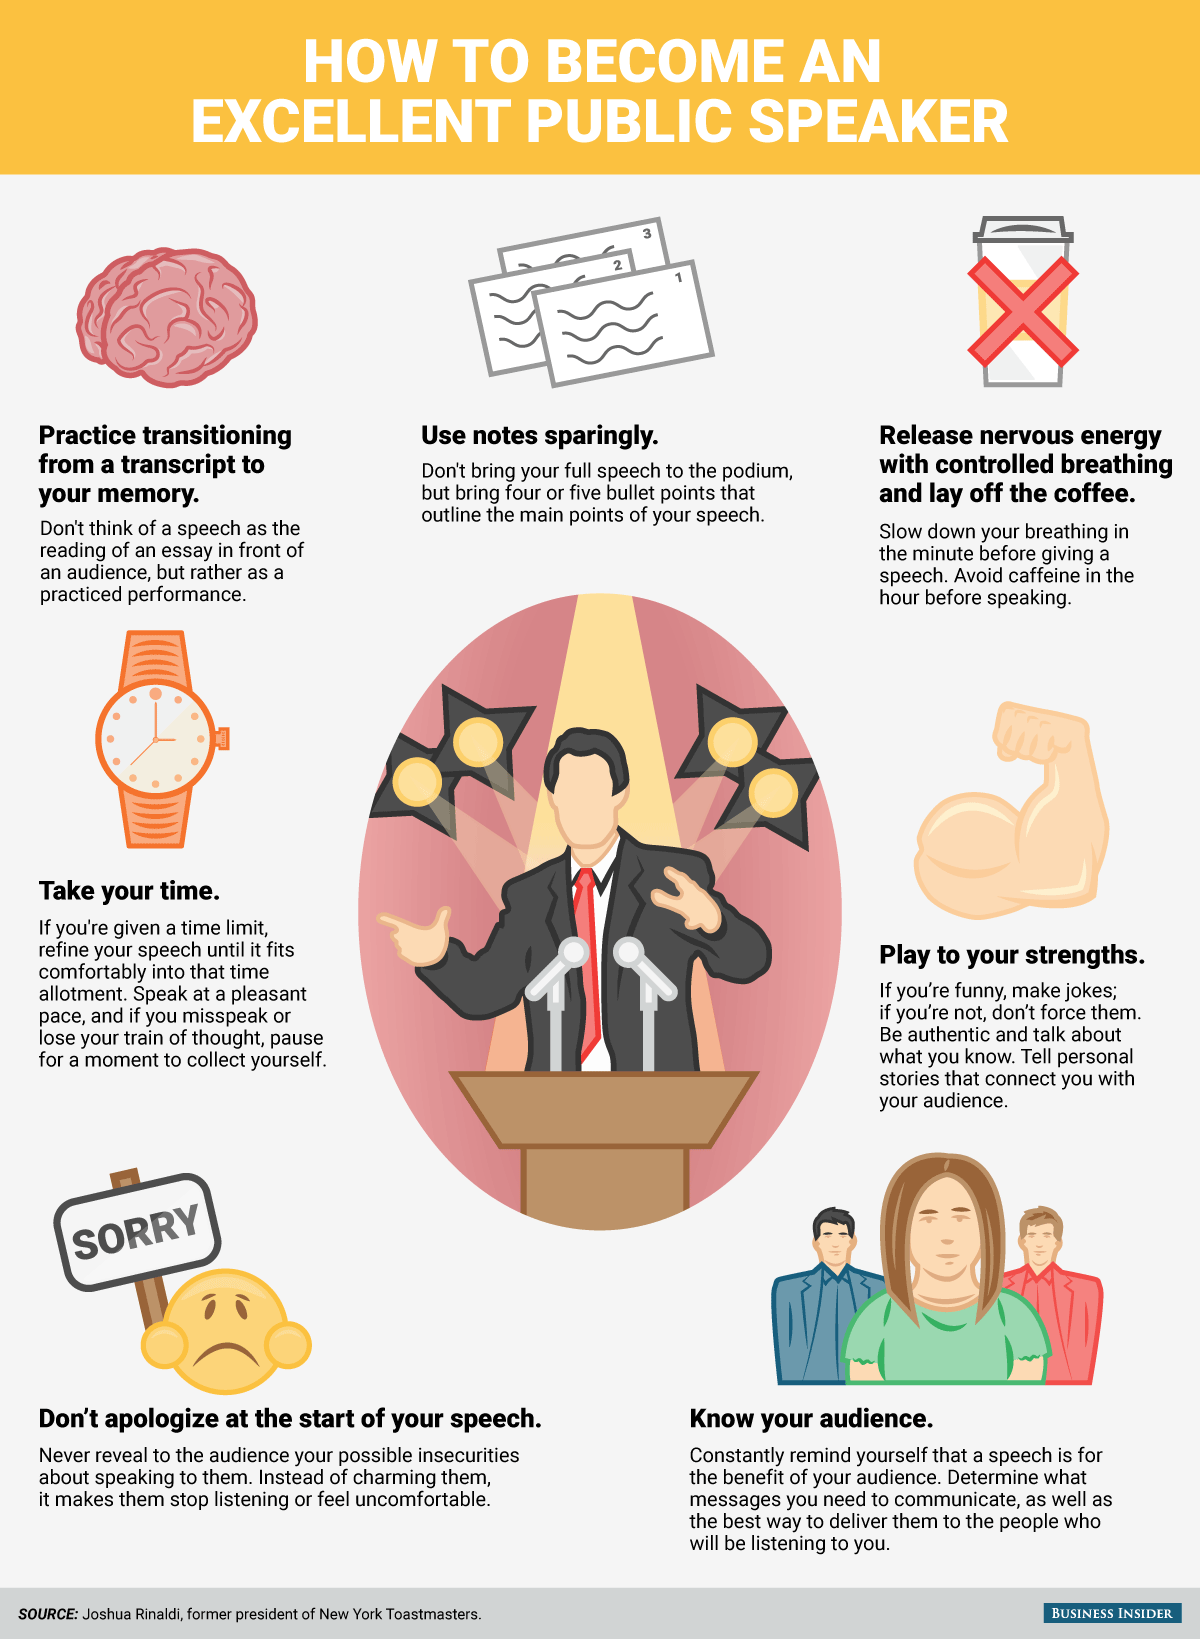 tips for becoming an excellent public speaker scripts look at bi graphic the ultimate guide to becoming an excellent public speaker